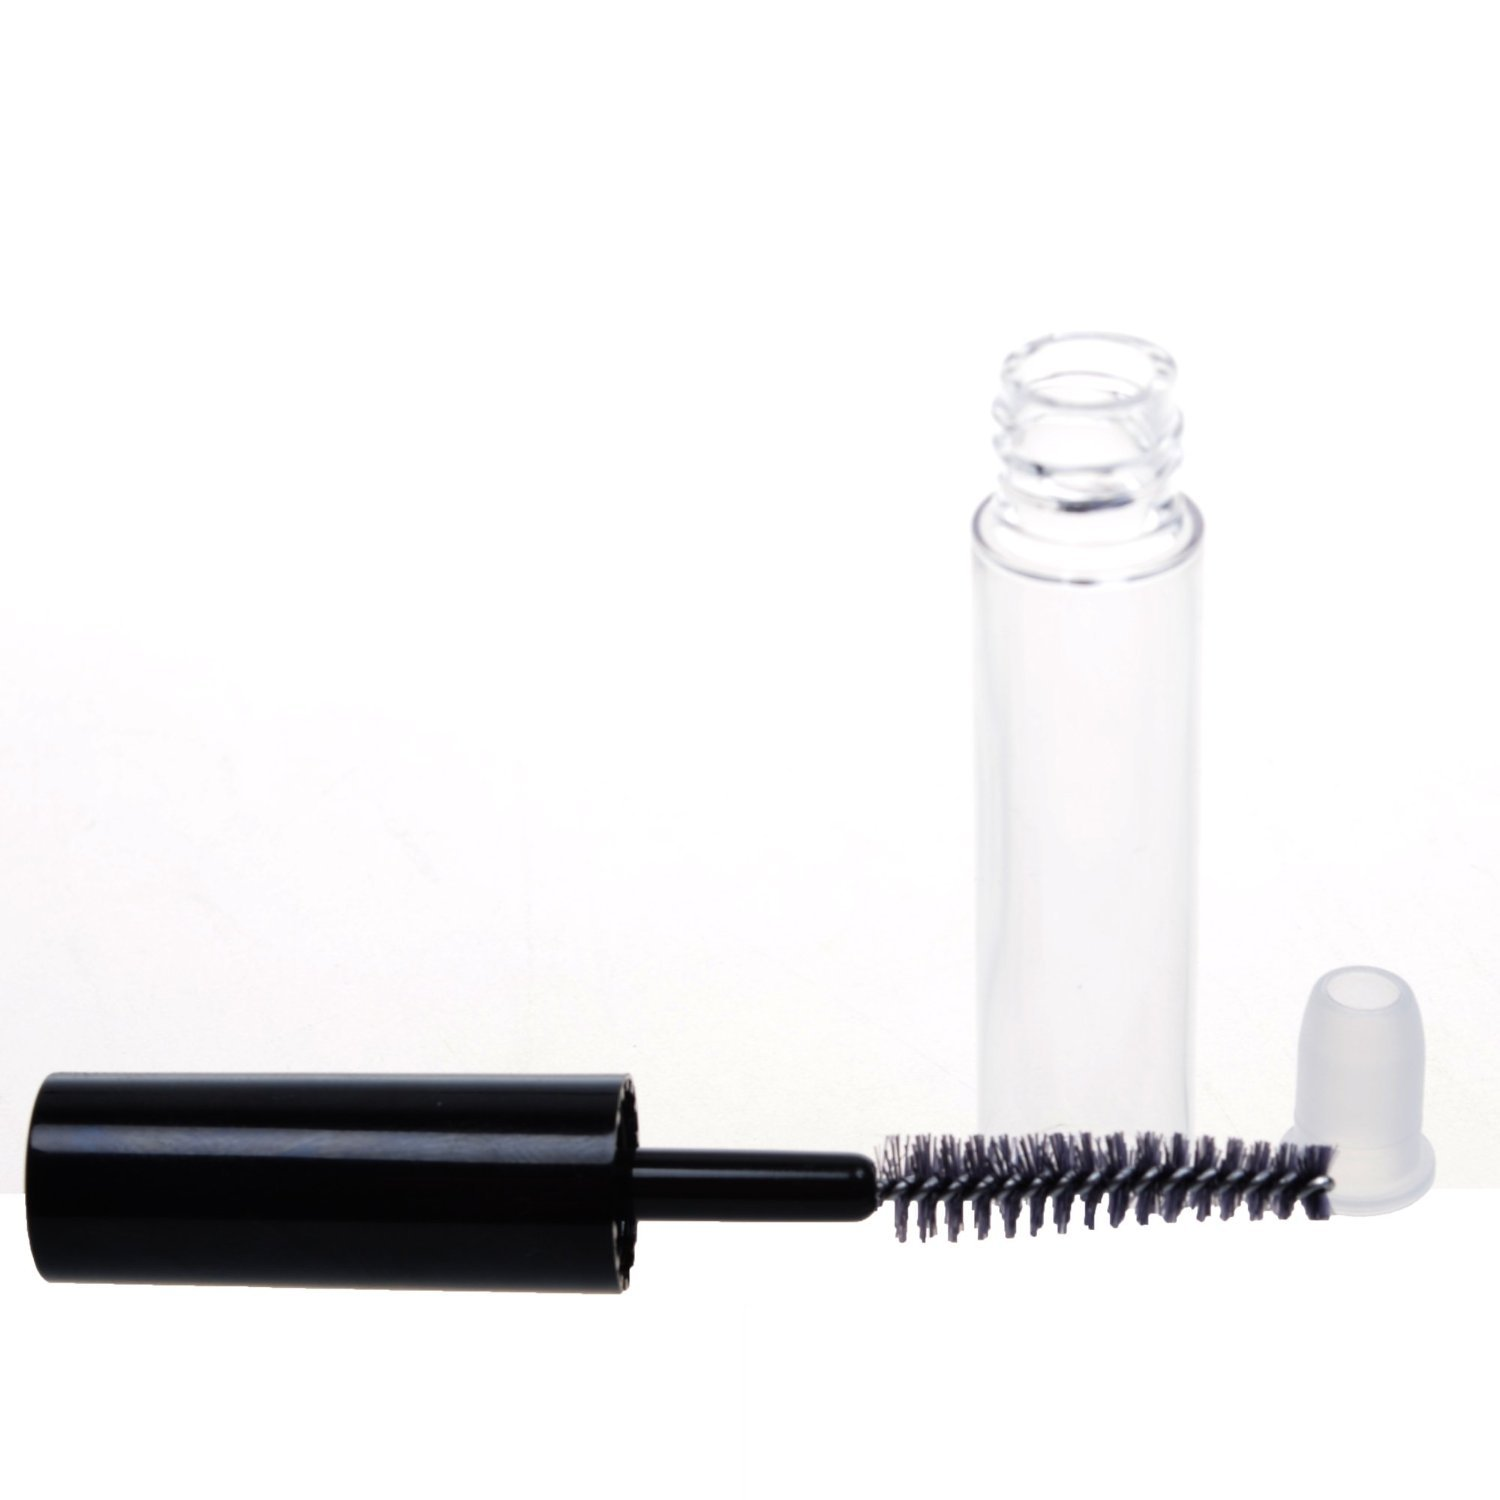 5Pcs 4ml Reusable Empty Eyelash Growth Oil Mascara Bottle Tube Case Holder Container with Brush for Beauty and Makeup by lasenersm (Image #2)